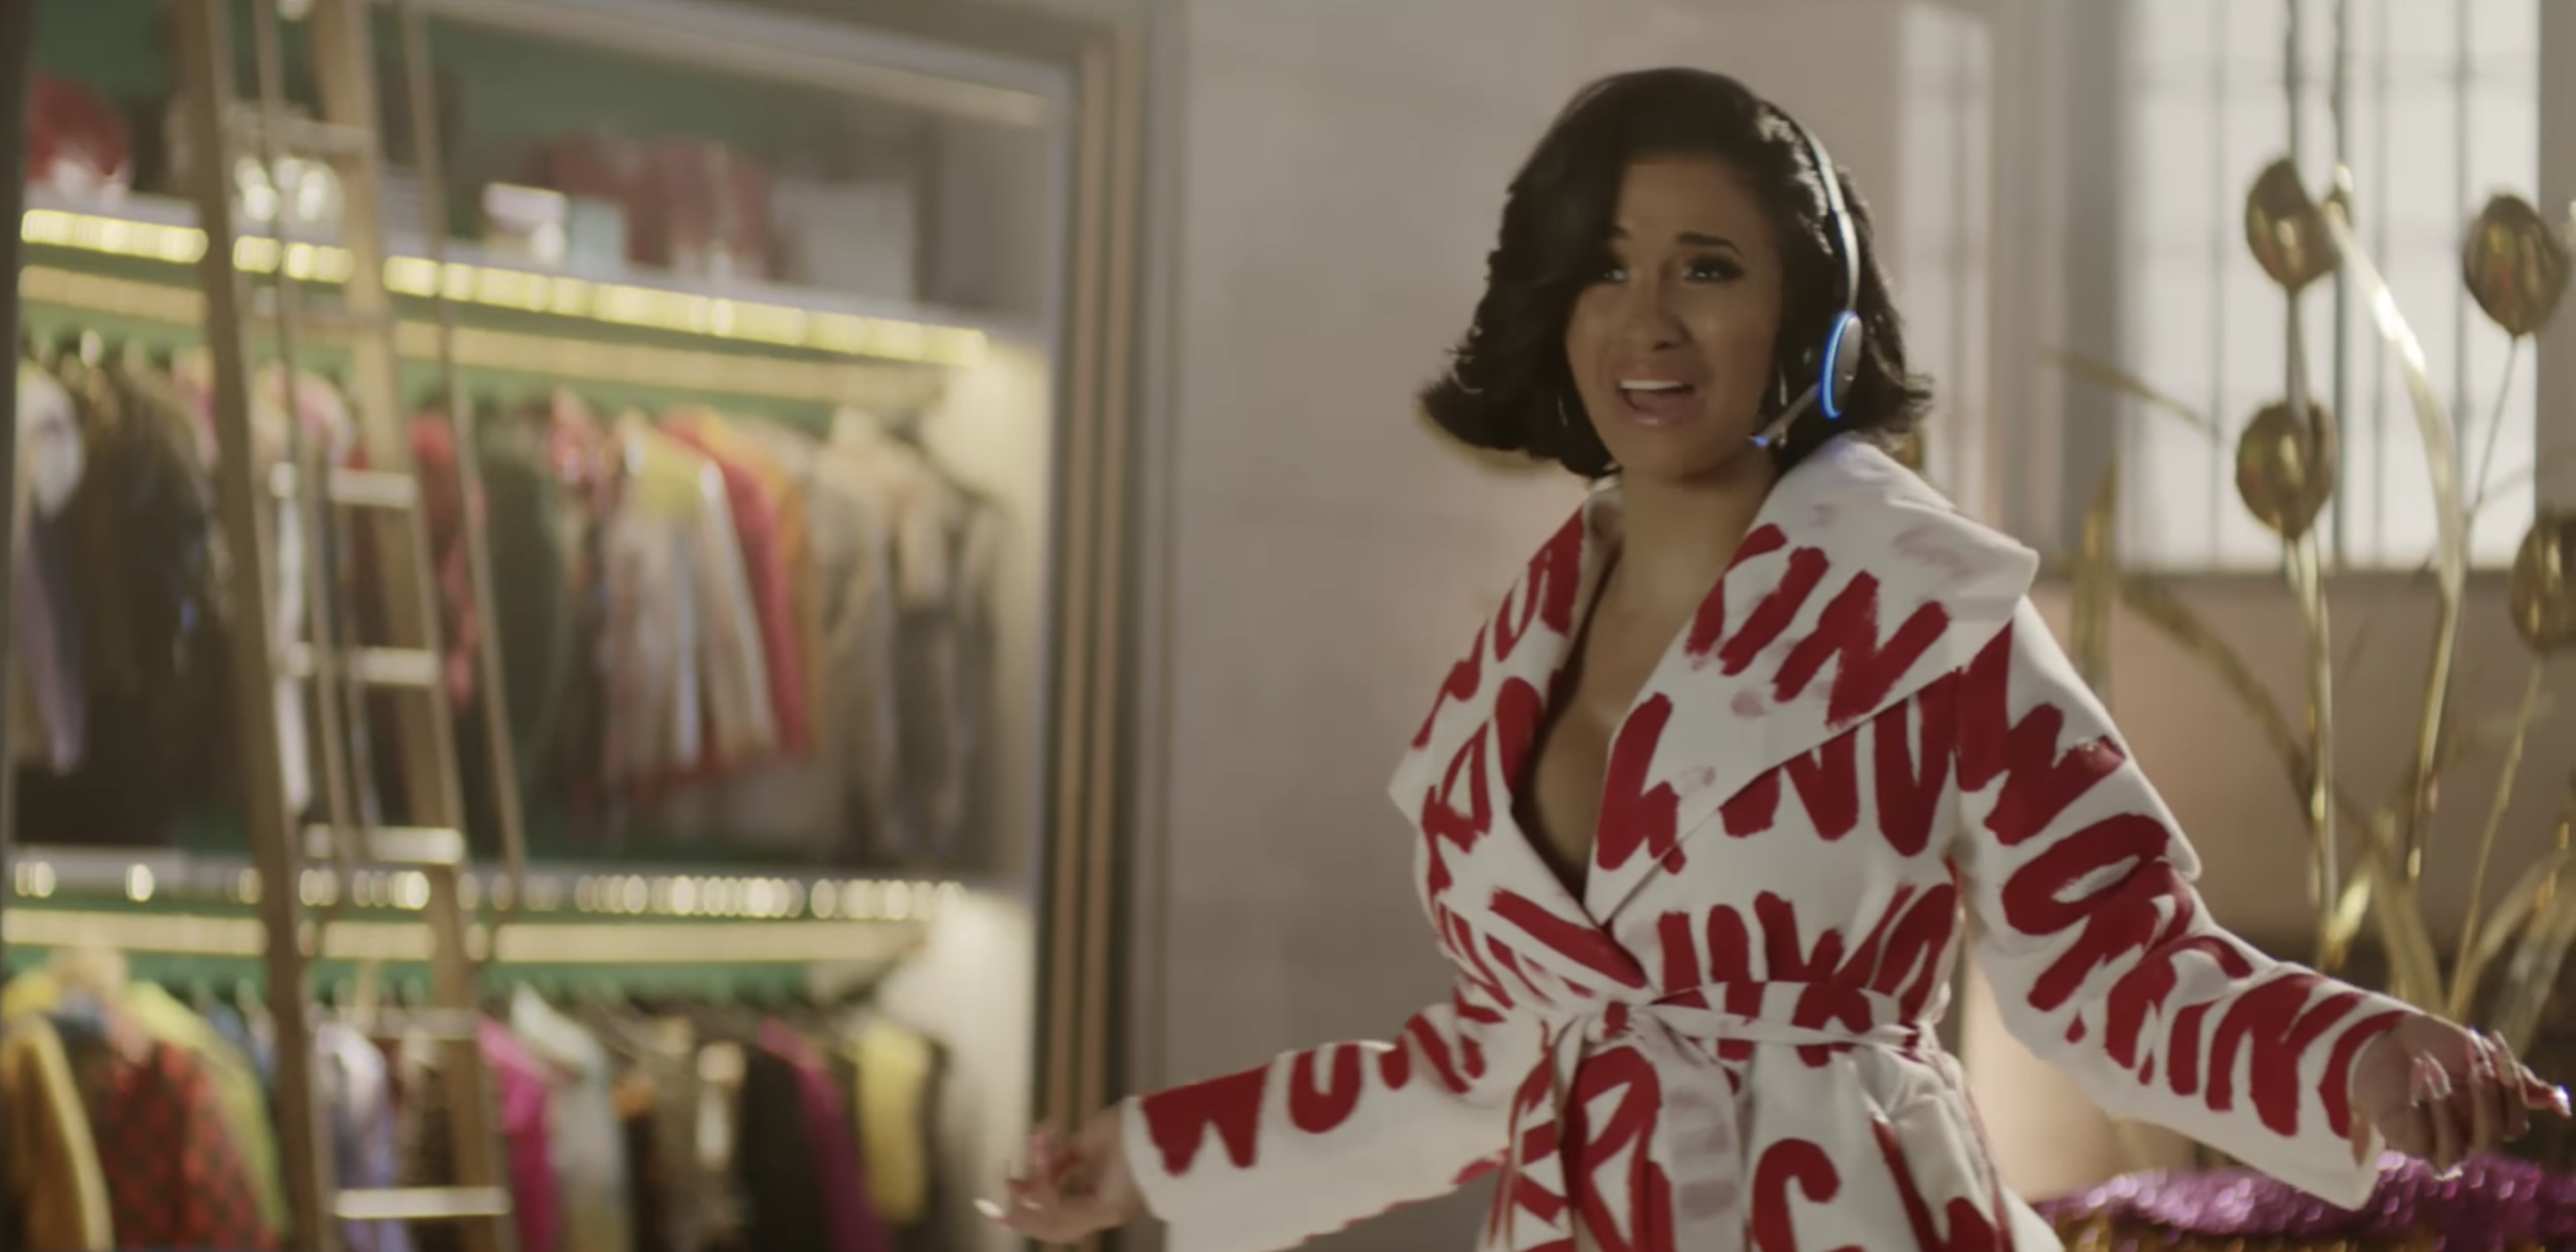 Singer Cardi B wears a headset and microphone to act as Amazon's voice assistant, Alexa.